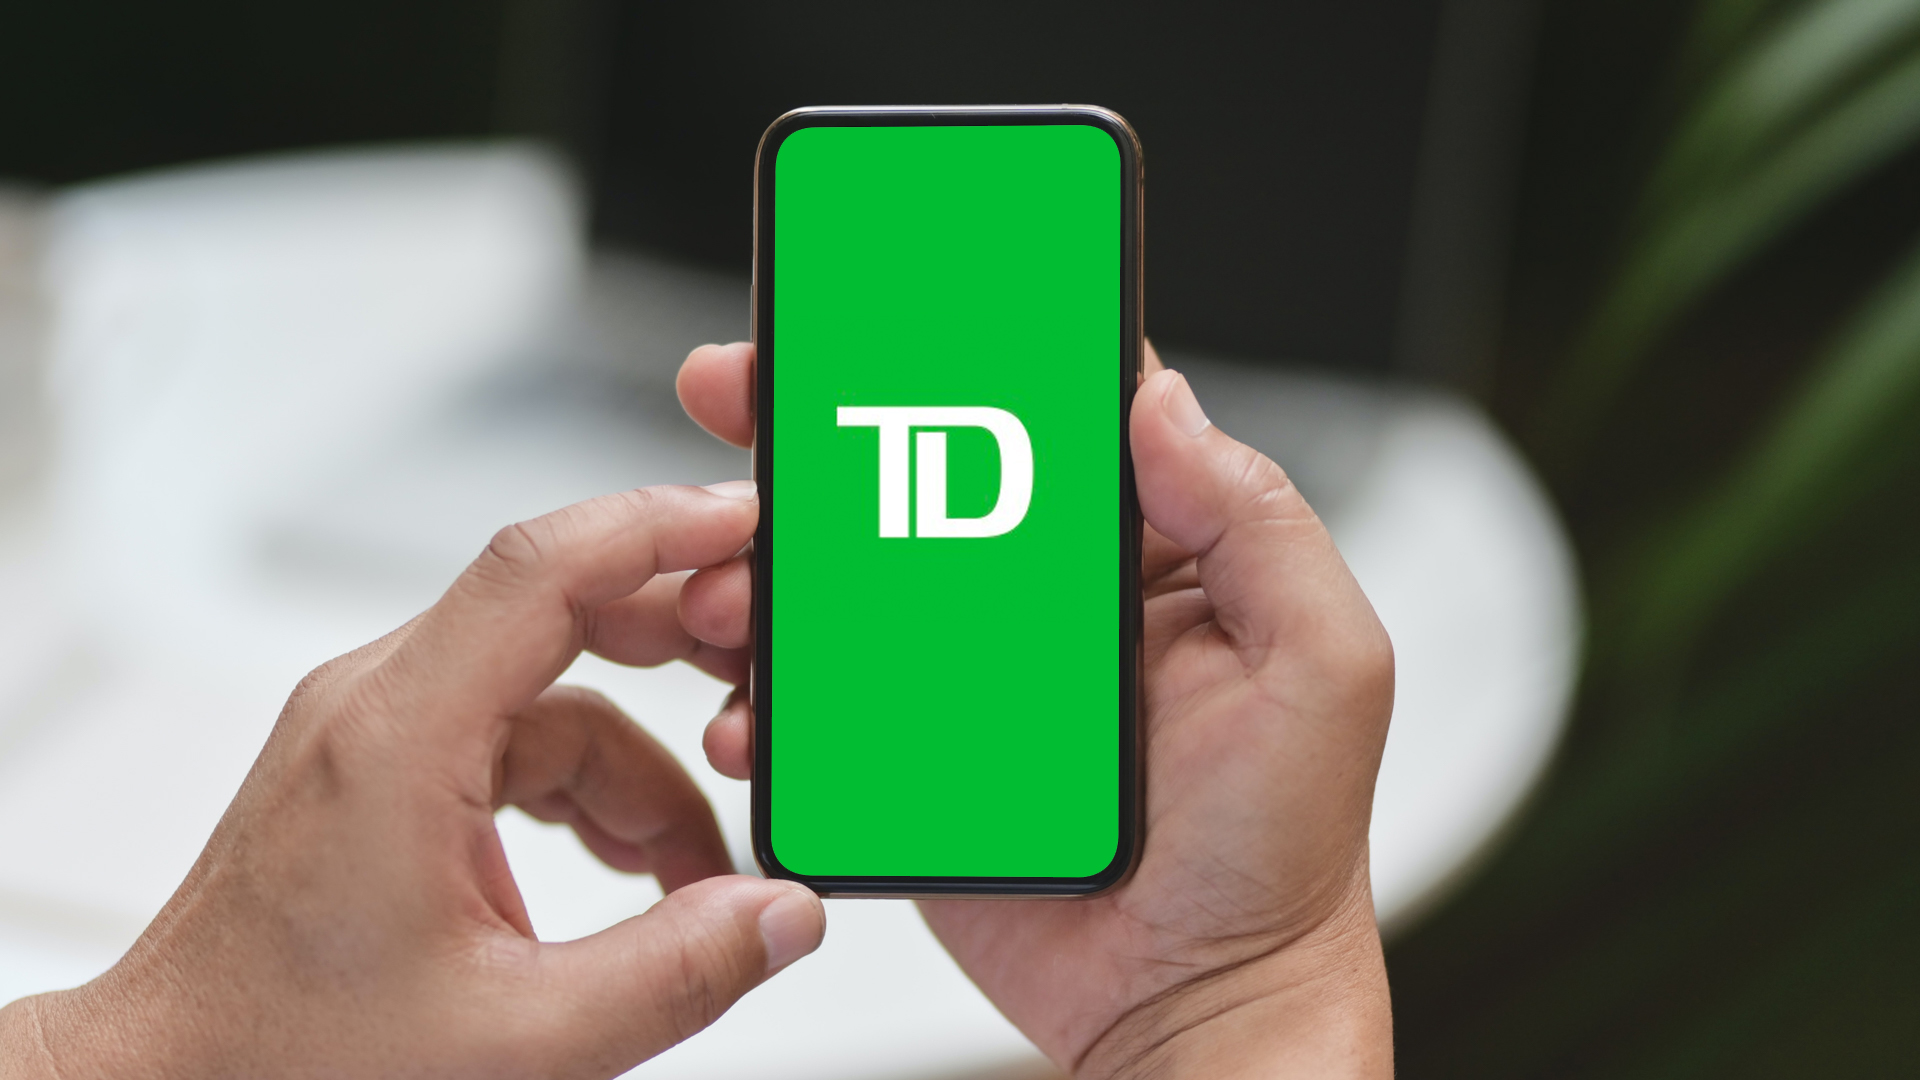 TD Ameritrade bank logo on smartphone.